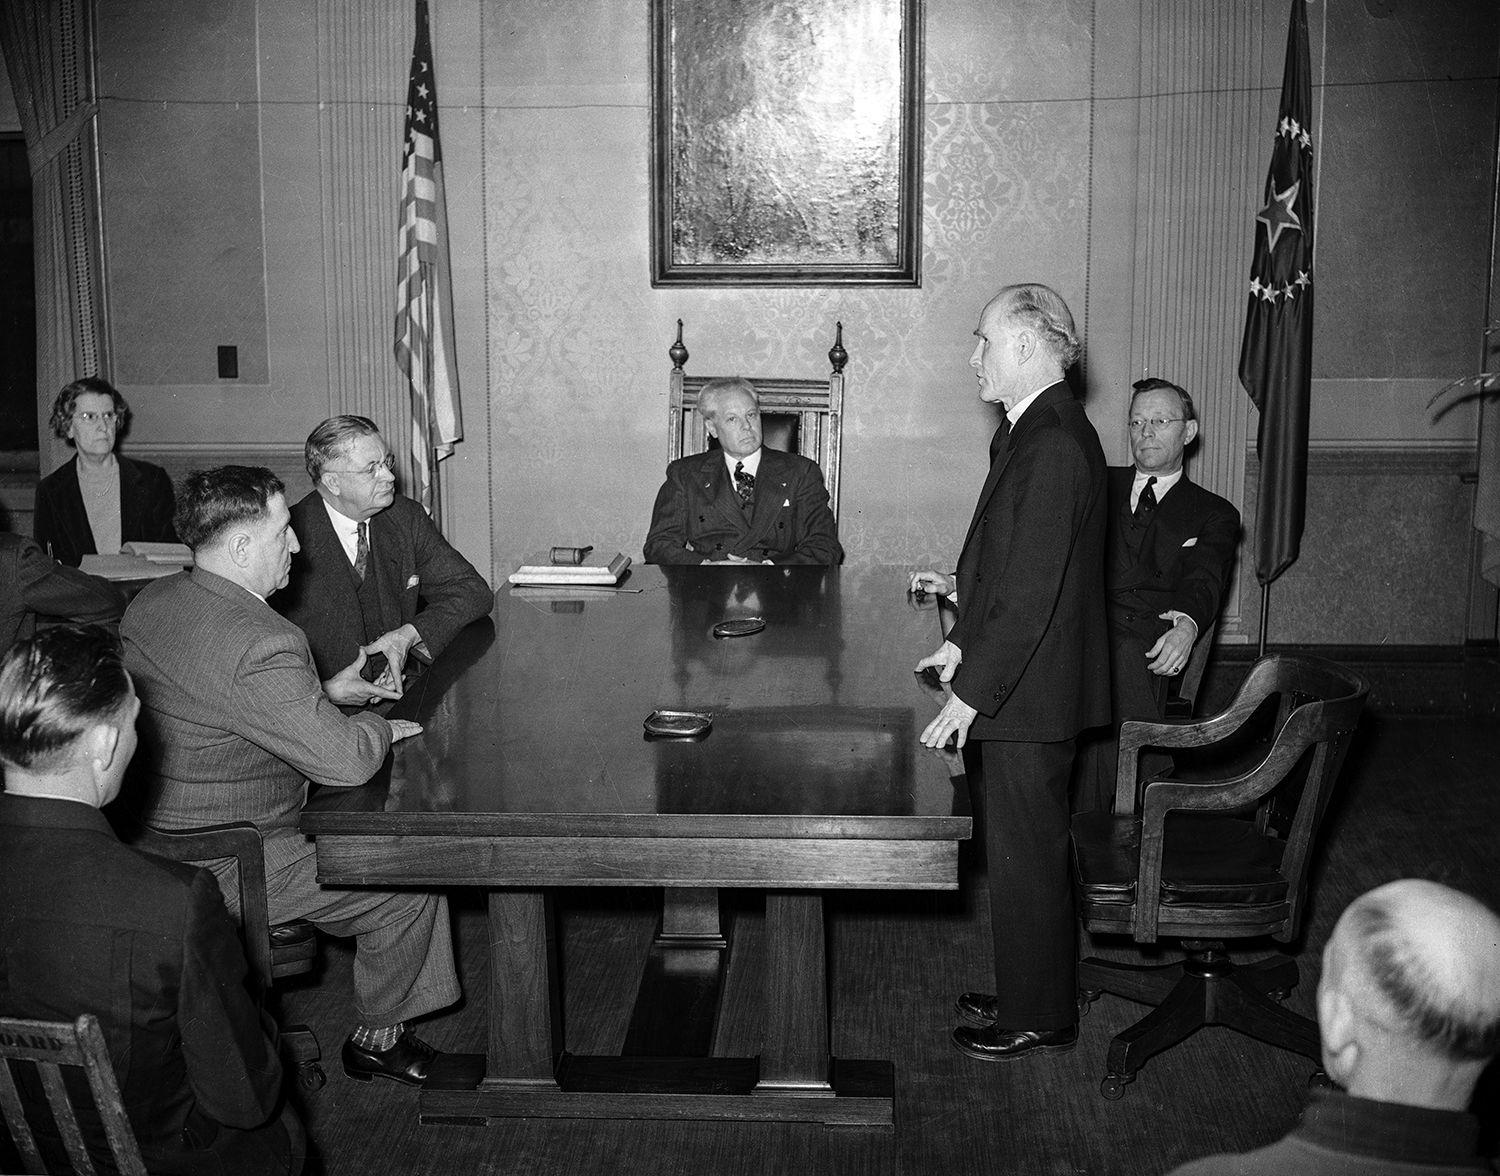 Springfield city council first meeting after election, April 10, 1939 at Springfield City Hall. From left, Percy Darling, commissioner of streets and public improvements; J.A. Van Nattan, commissioner of public health and safety; Mayor John Kapp, Harry Leuers, commissioner of accounts and finances; and Willis Spaulding, commissioner of public property. File/The State Journal-Register